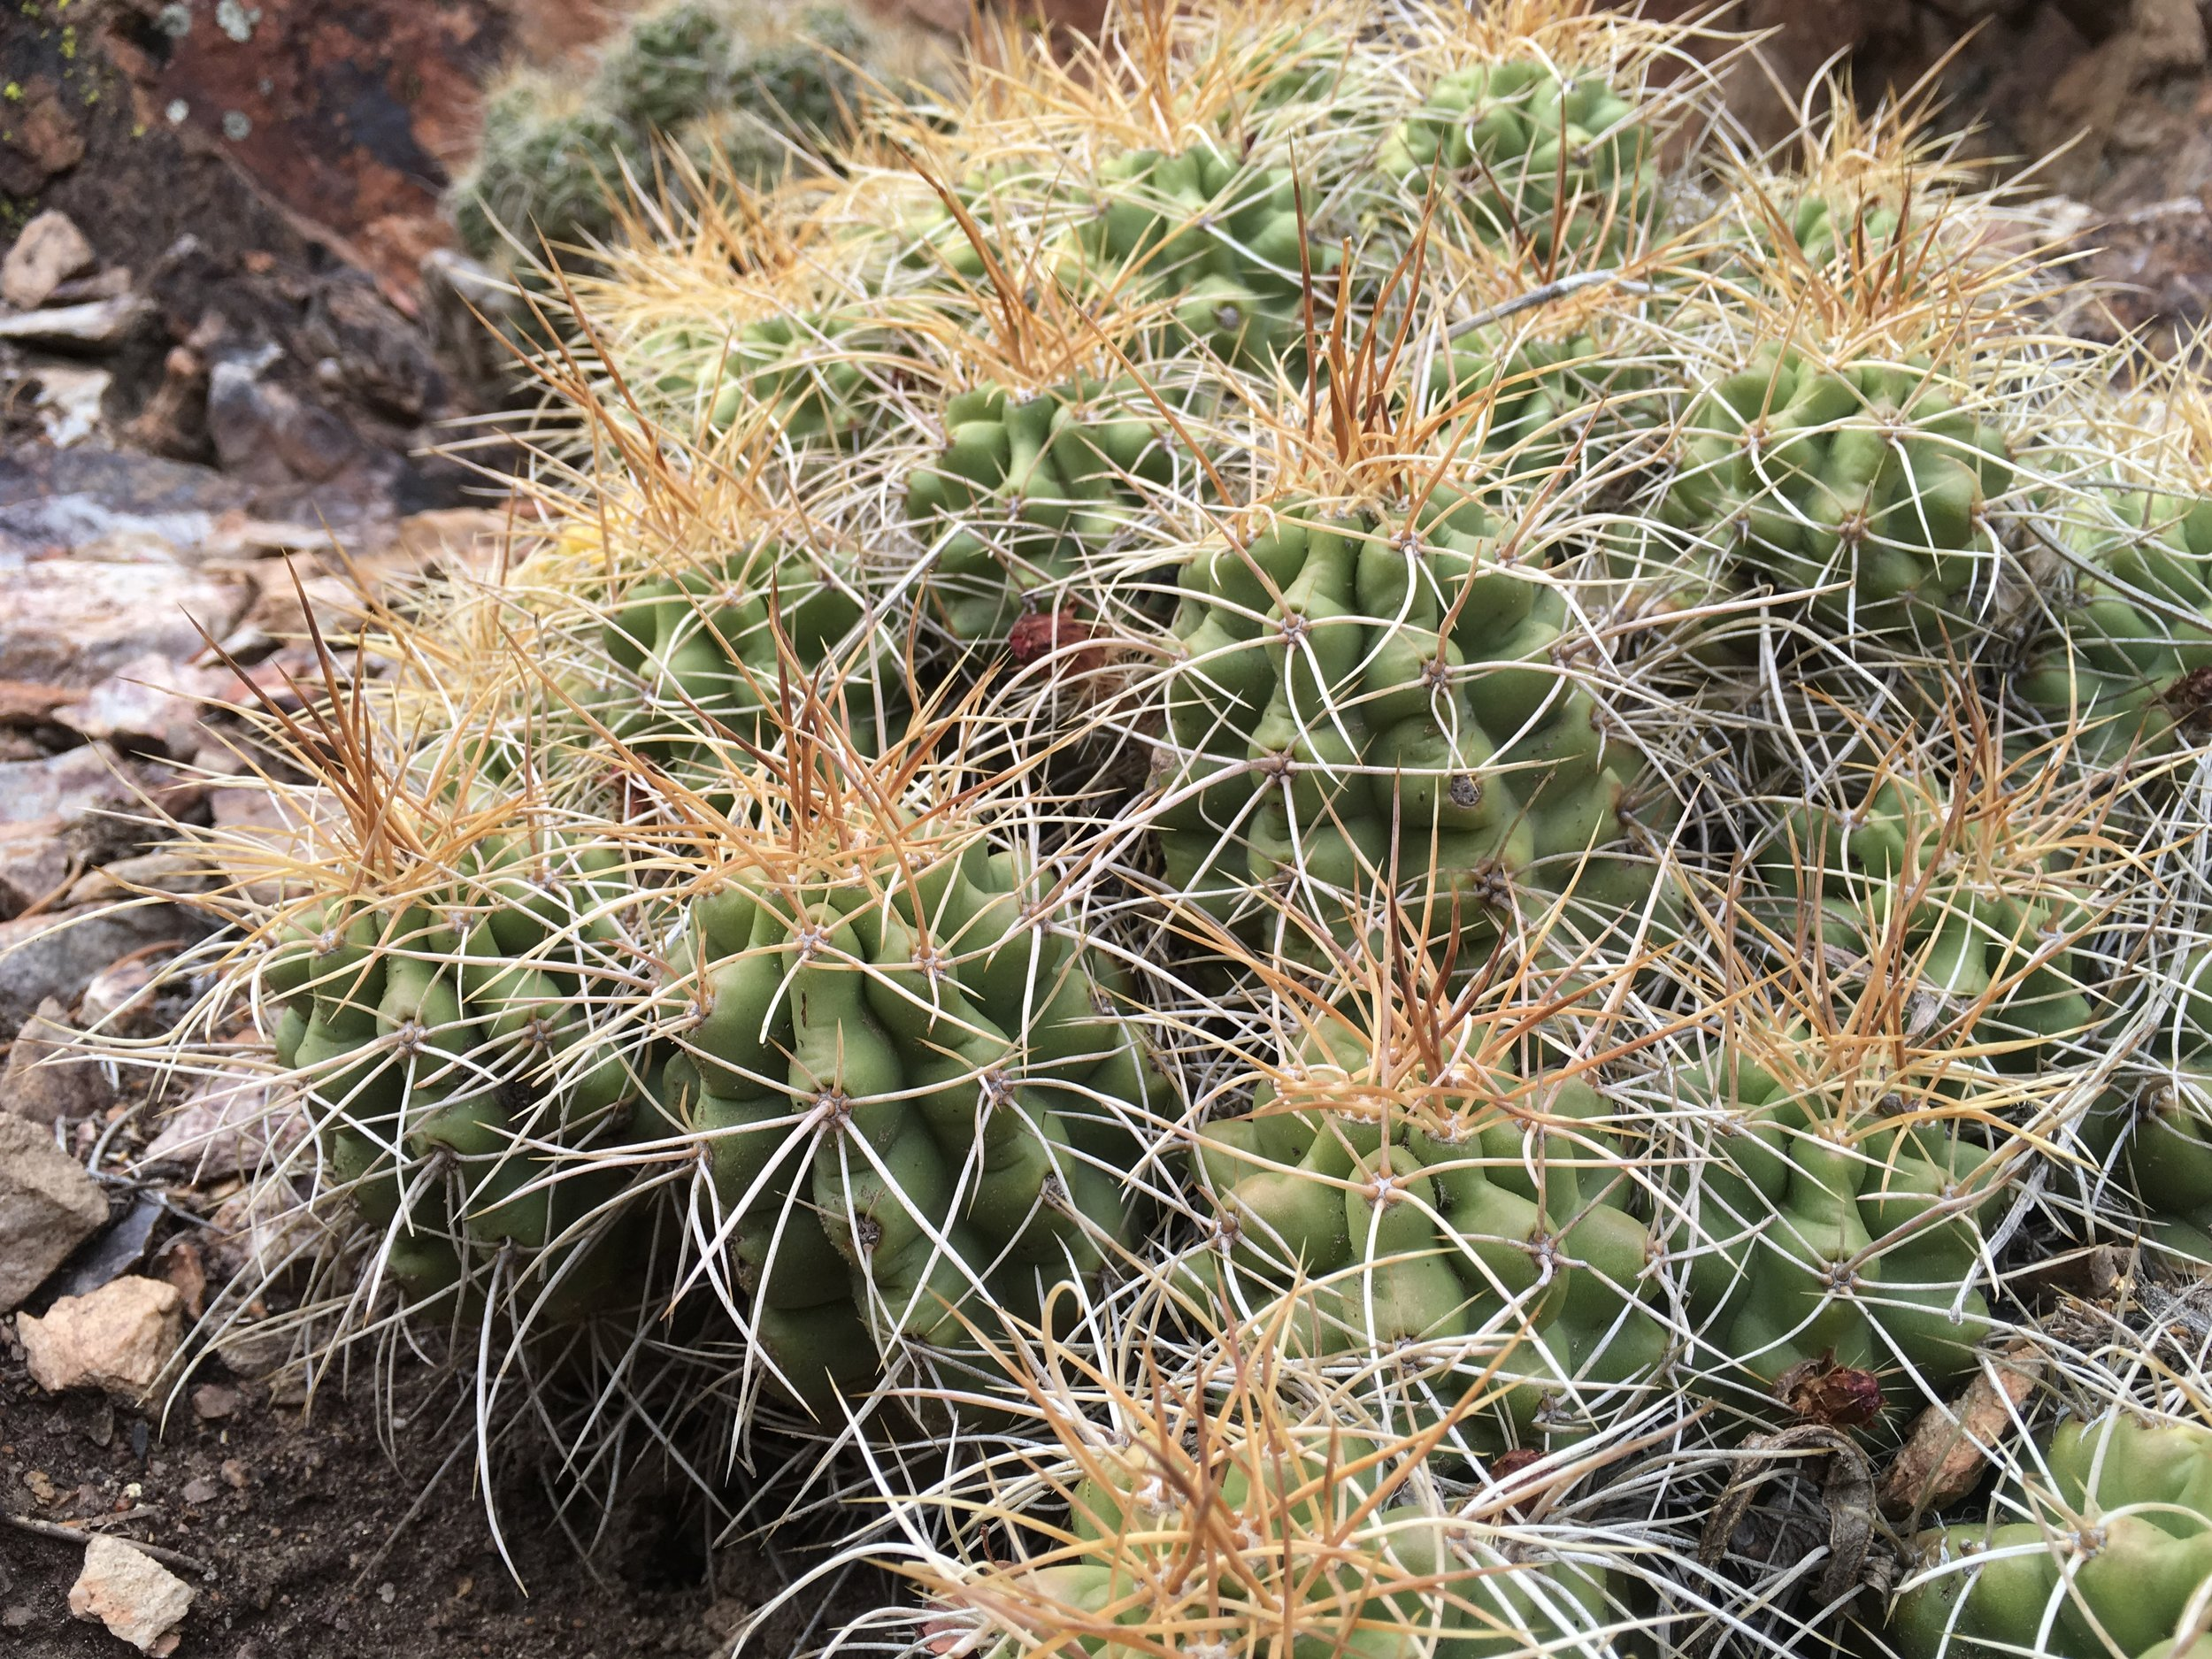 Cacti, we keep seeing new species the further south we hike.